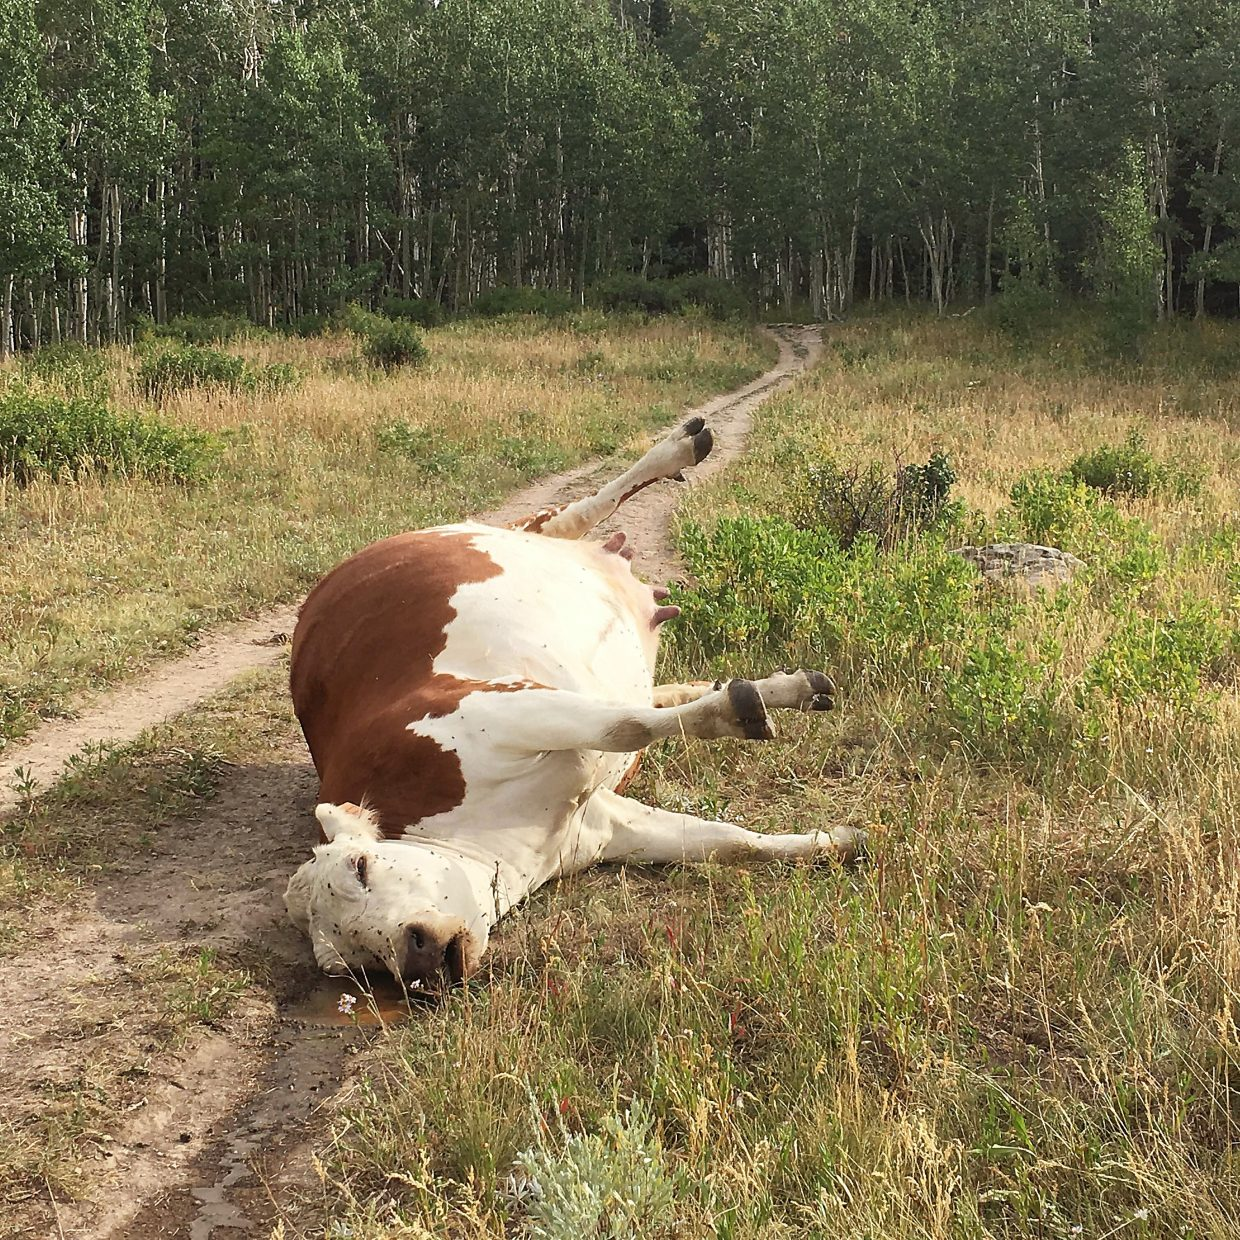 Forest Service looks to move dead cow on Sopris trail | PostIndependent.com